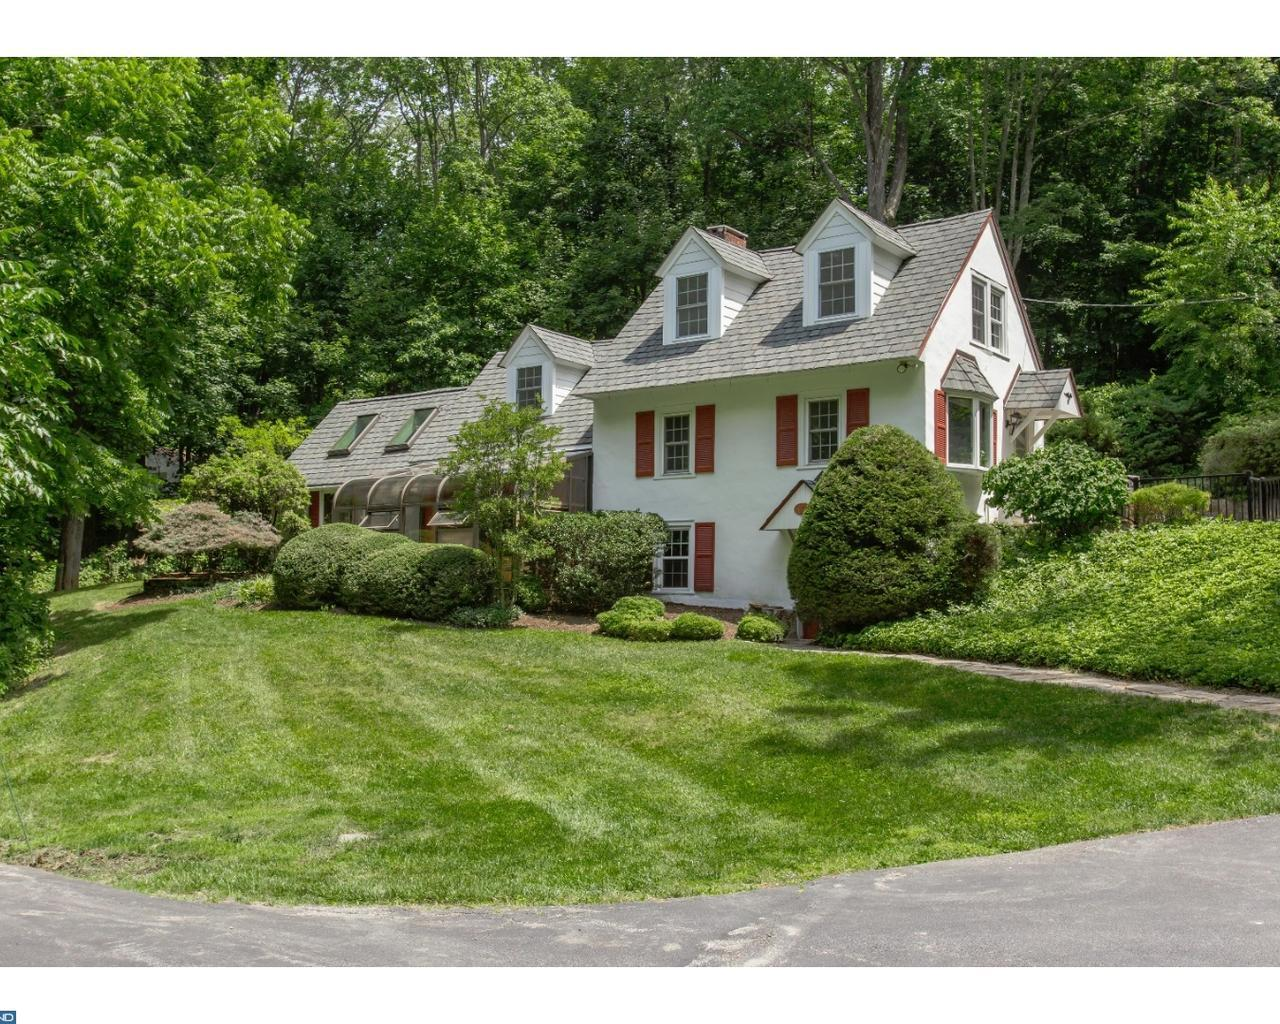 1455 ship rd west chester pa mls 7010230 era